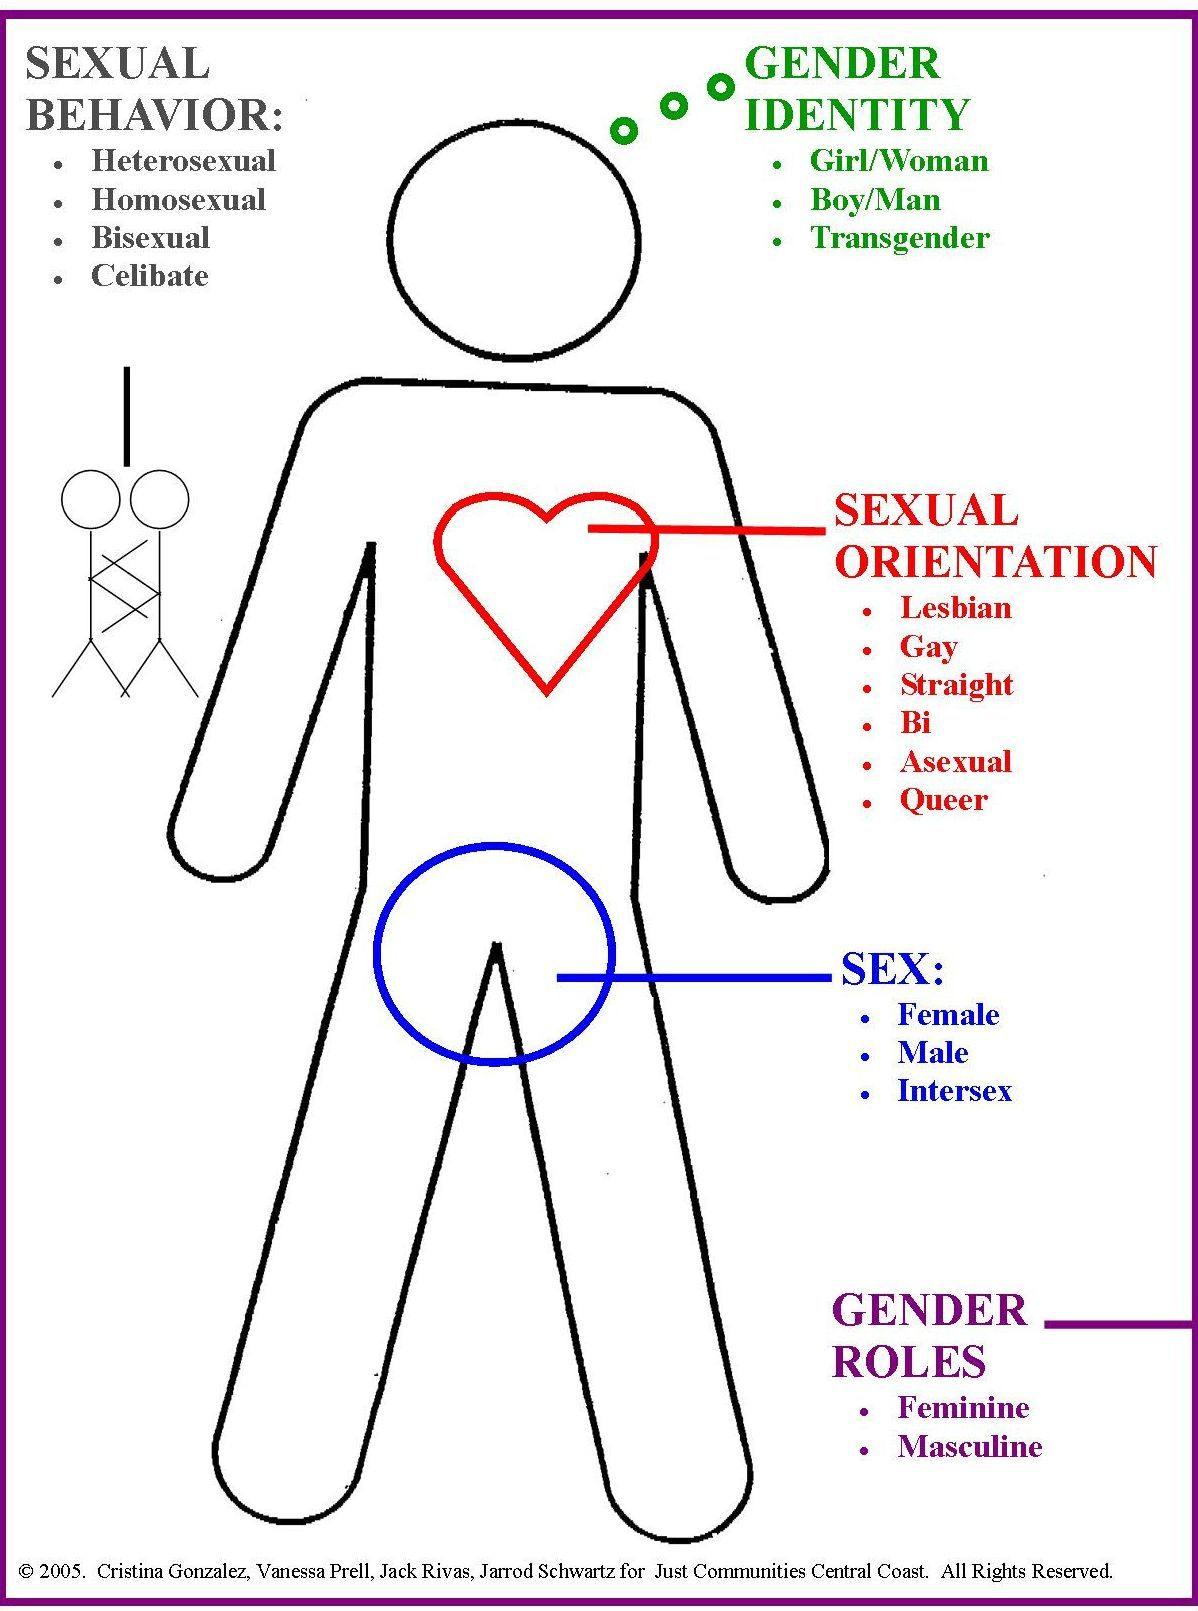 Gendersex, sexual orientation, and identity are in the body